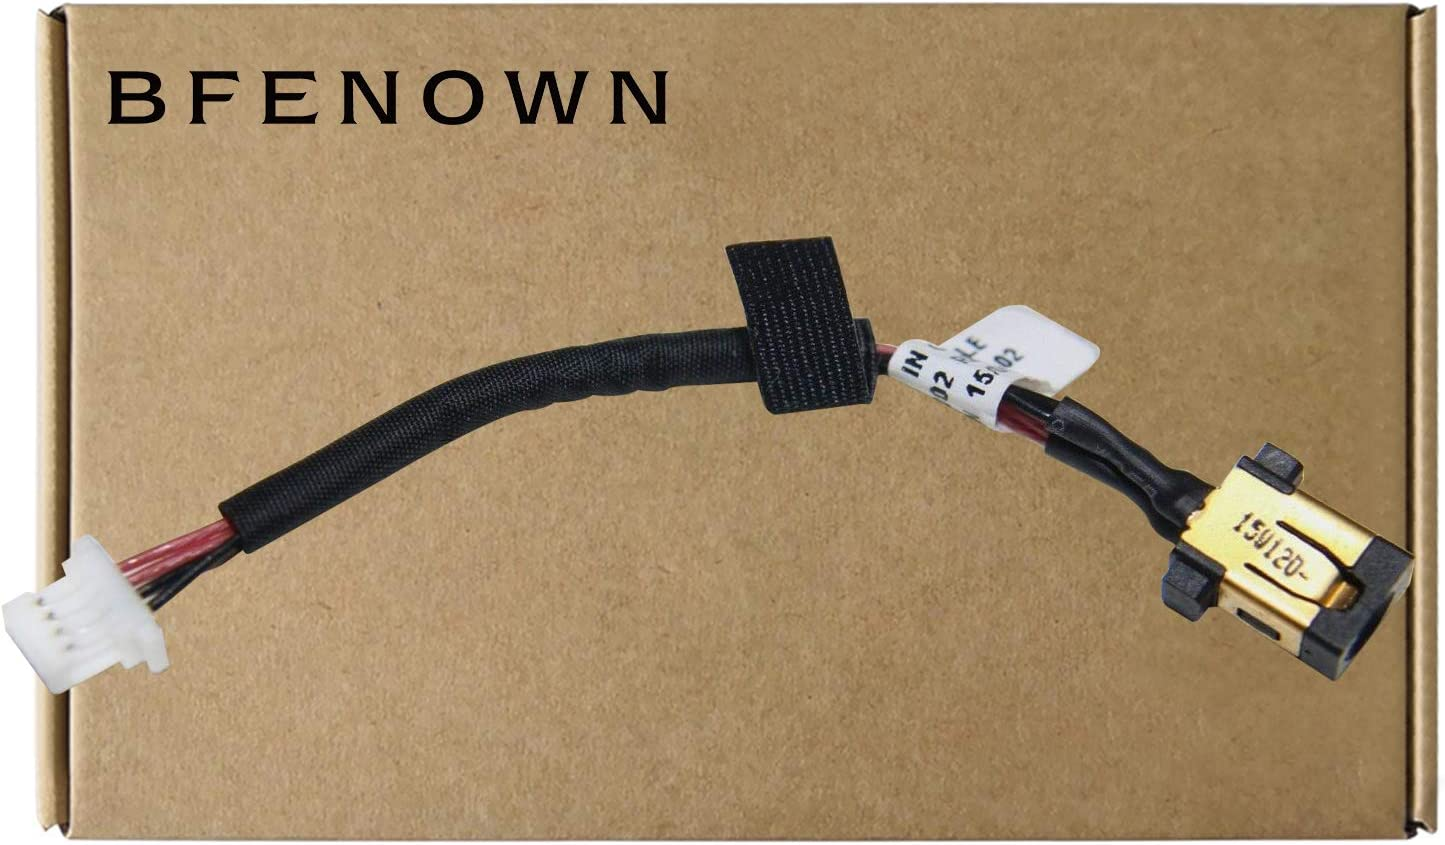 Bfenown DC Power Jack Harness Plug Cable for Acer Aspire S7 S7-191 S7-391 S7-392 Series Laptop 50.4WE05.001 50.4LZ01.001 50.4WD07.001